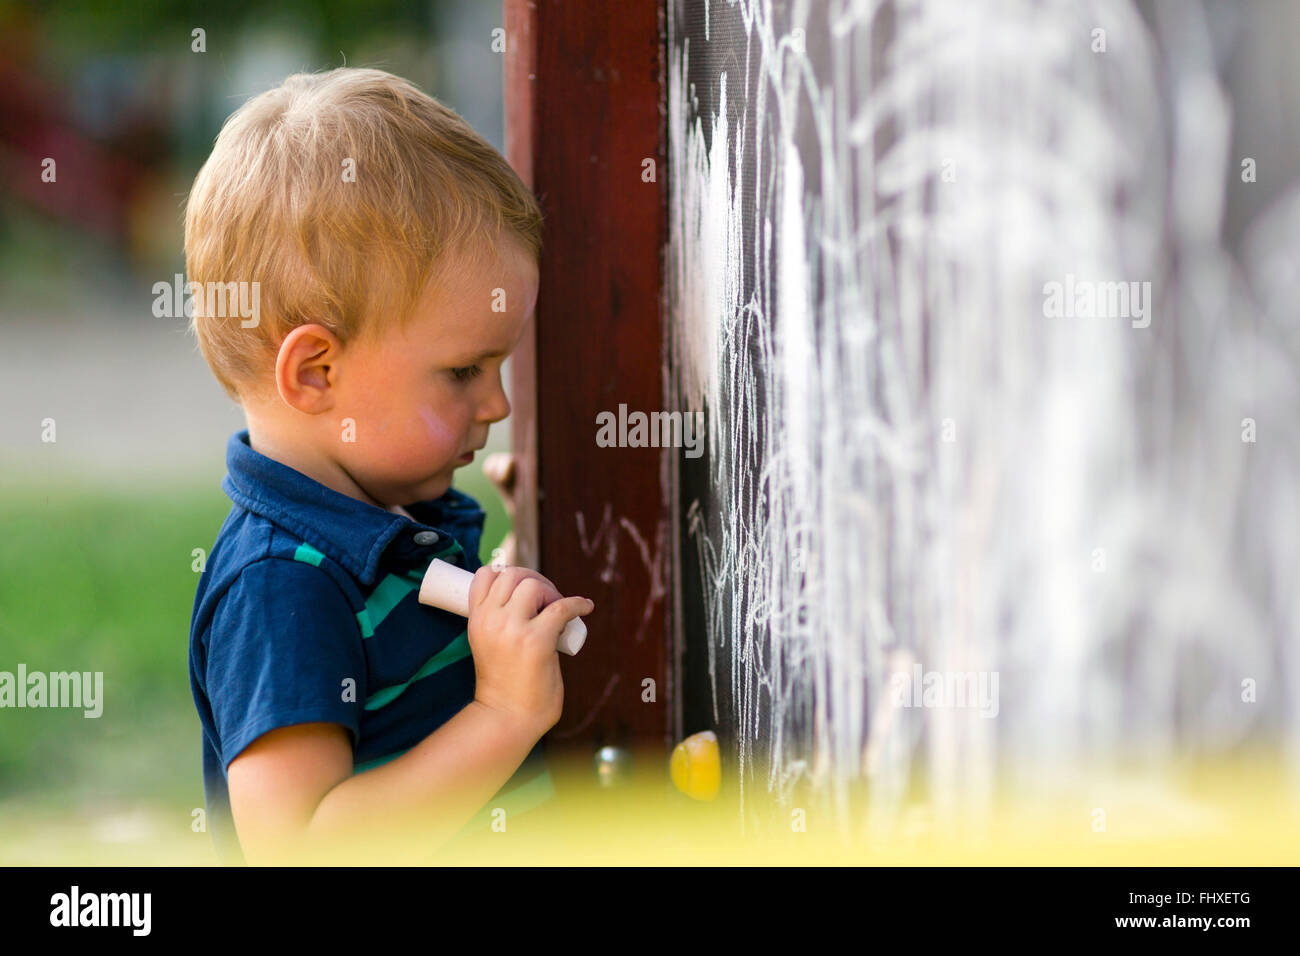 Creative cute toddler drawing with chalk outdoors on a drawing board - Stock Image